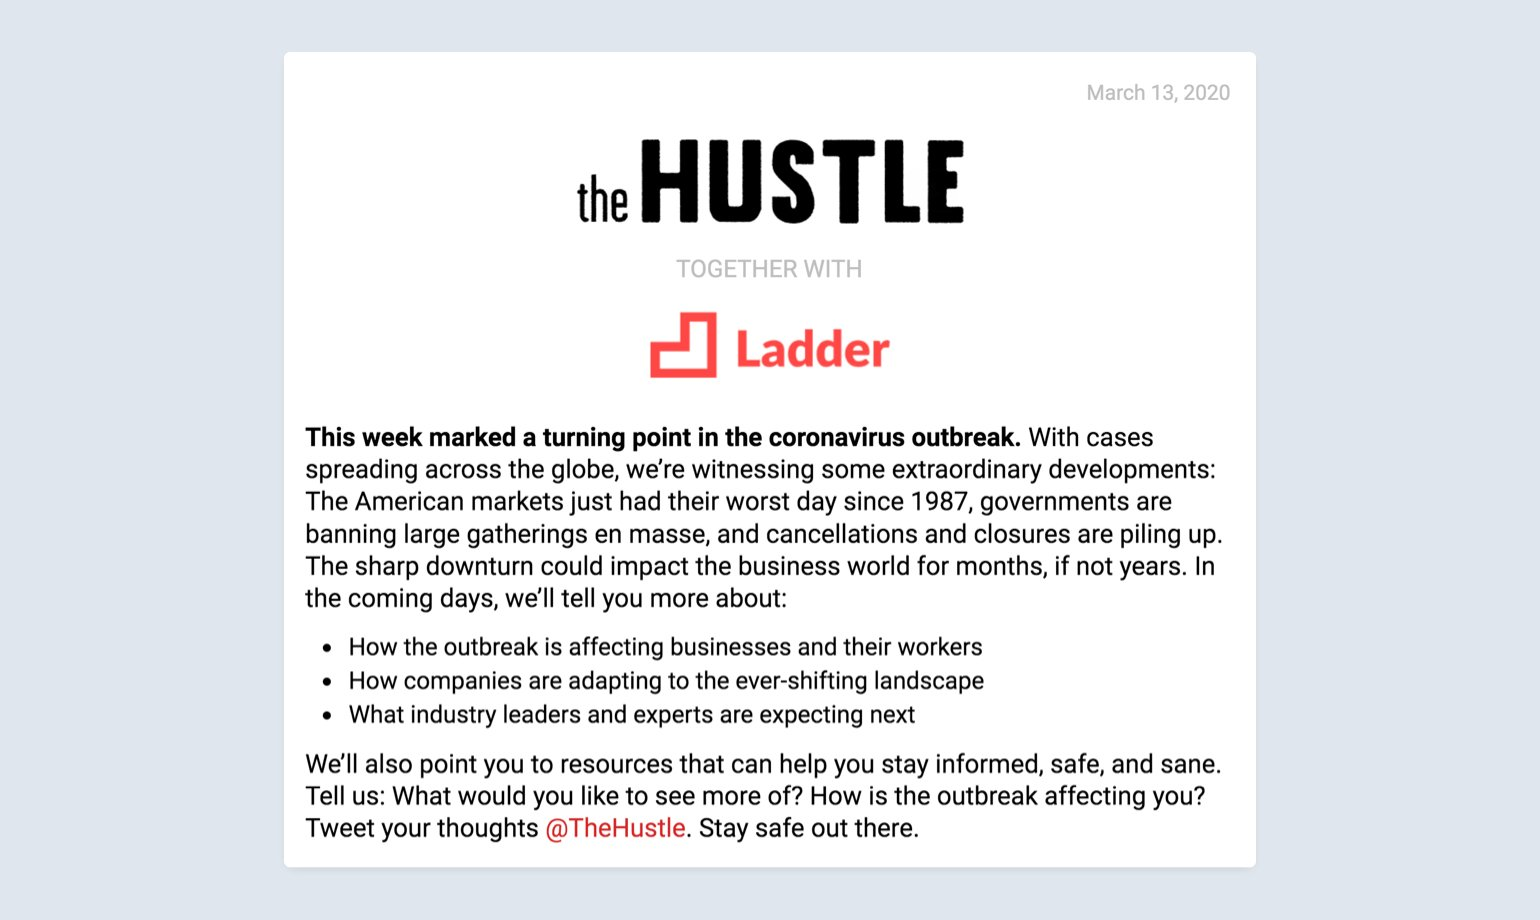 hustle email communication example during uncertain times